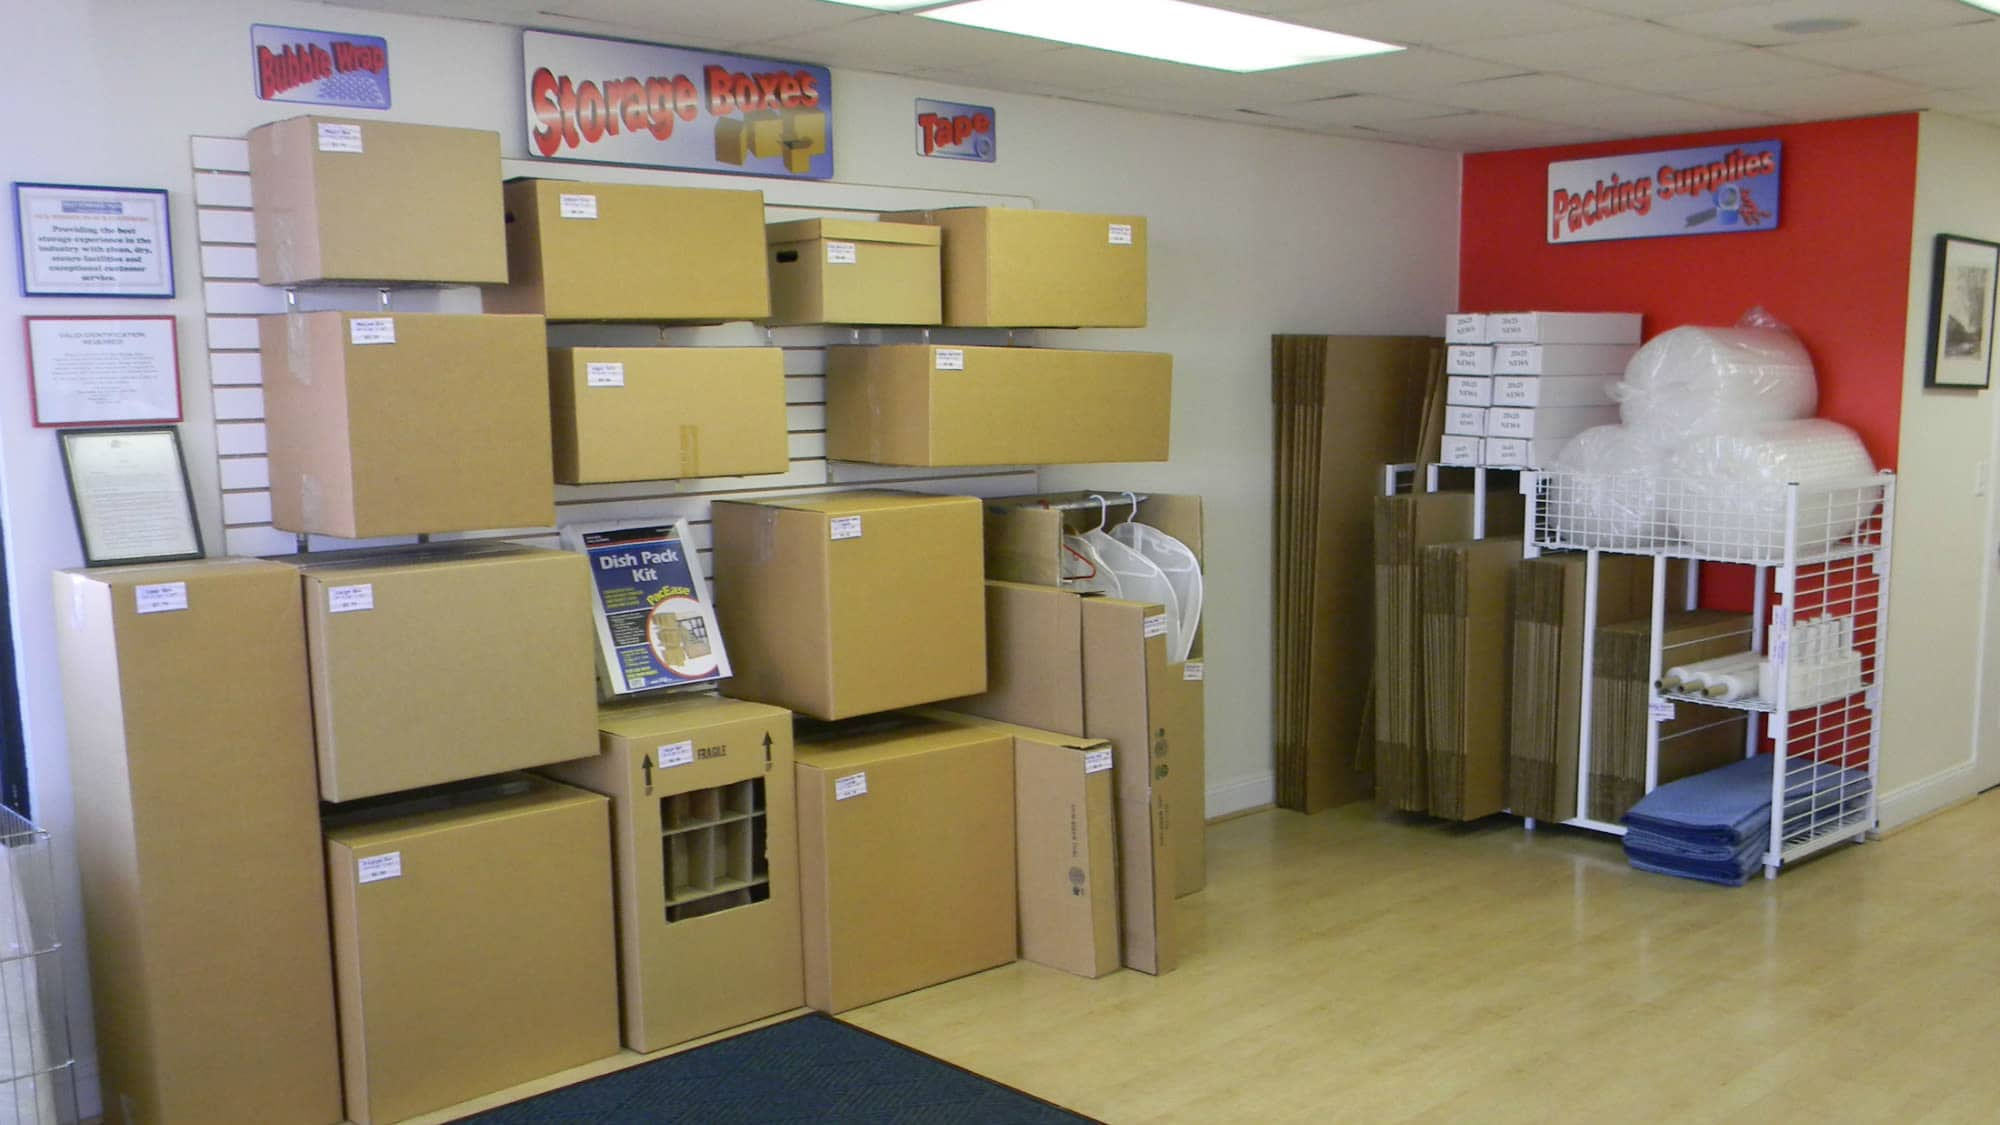 Packing supplies for sale at Self Storage Plus in Alexandria, VA